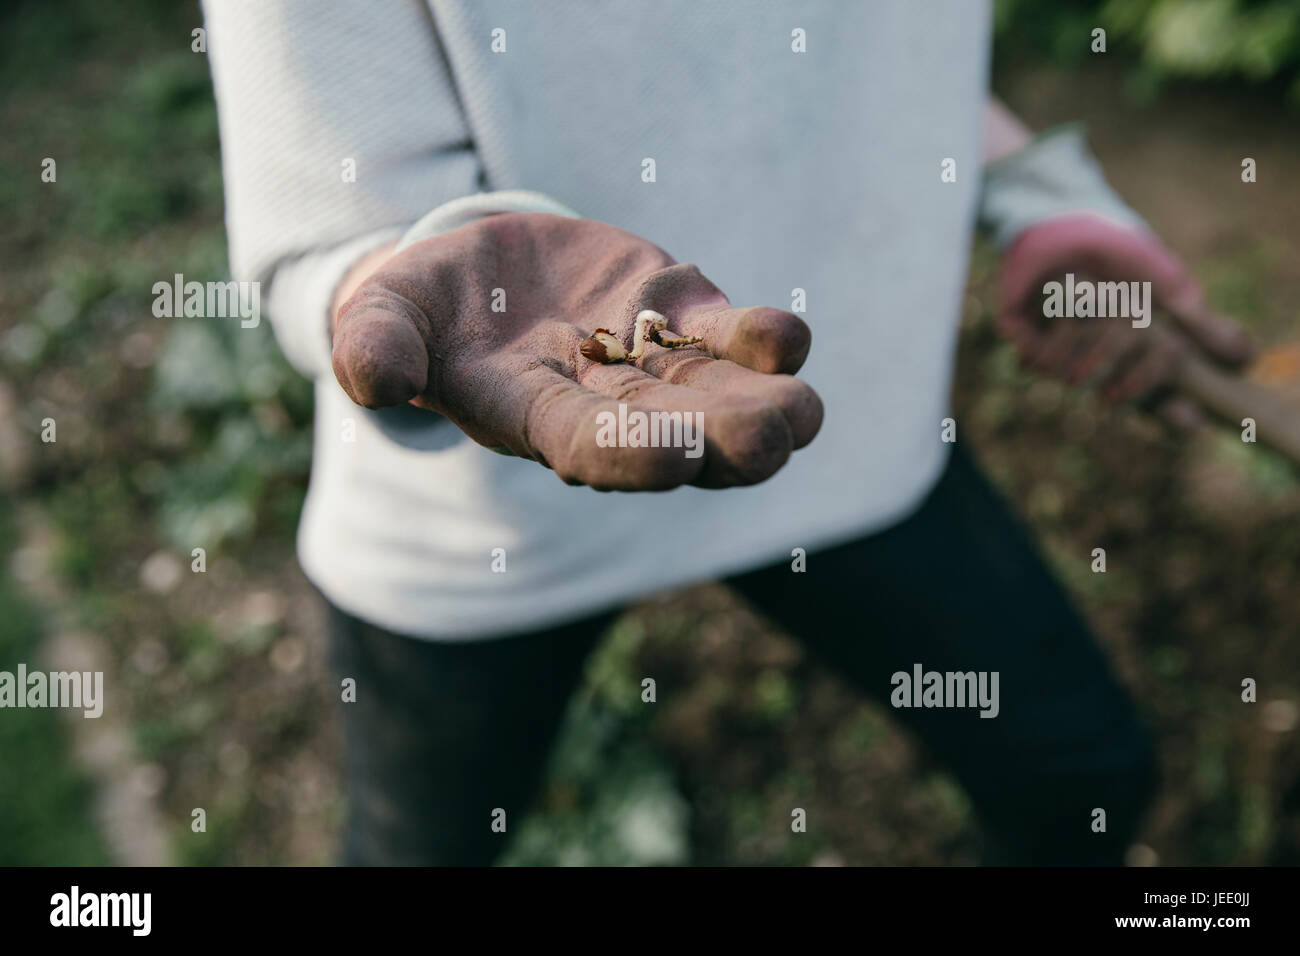 Hand of gardening woman holding a germ bud, close-up Stock Photo